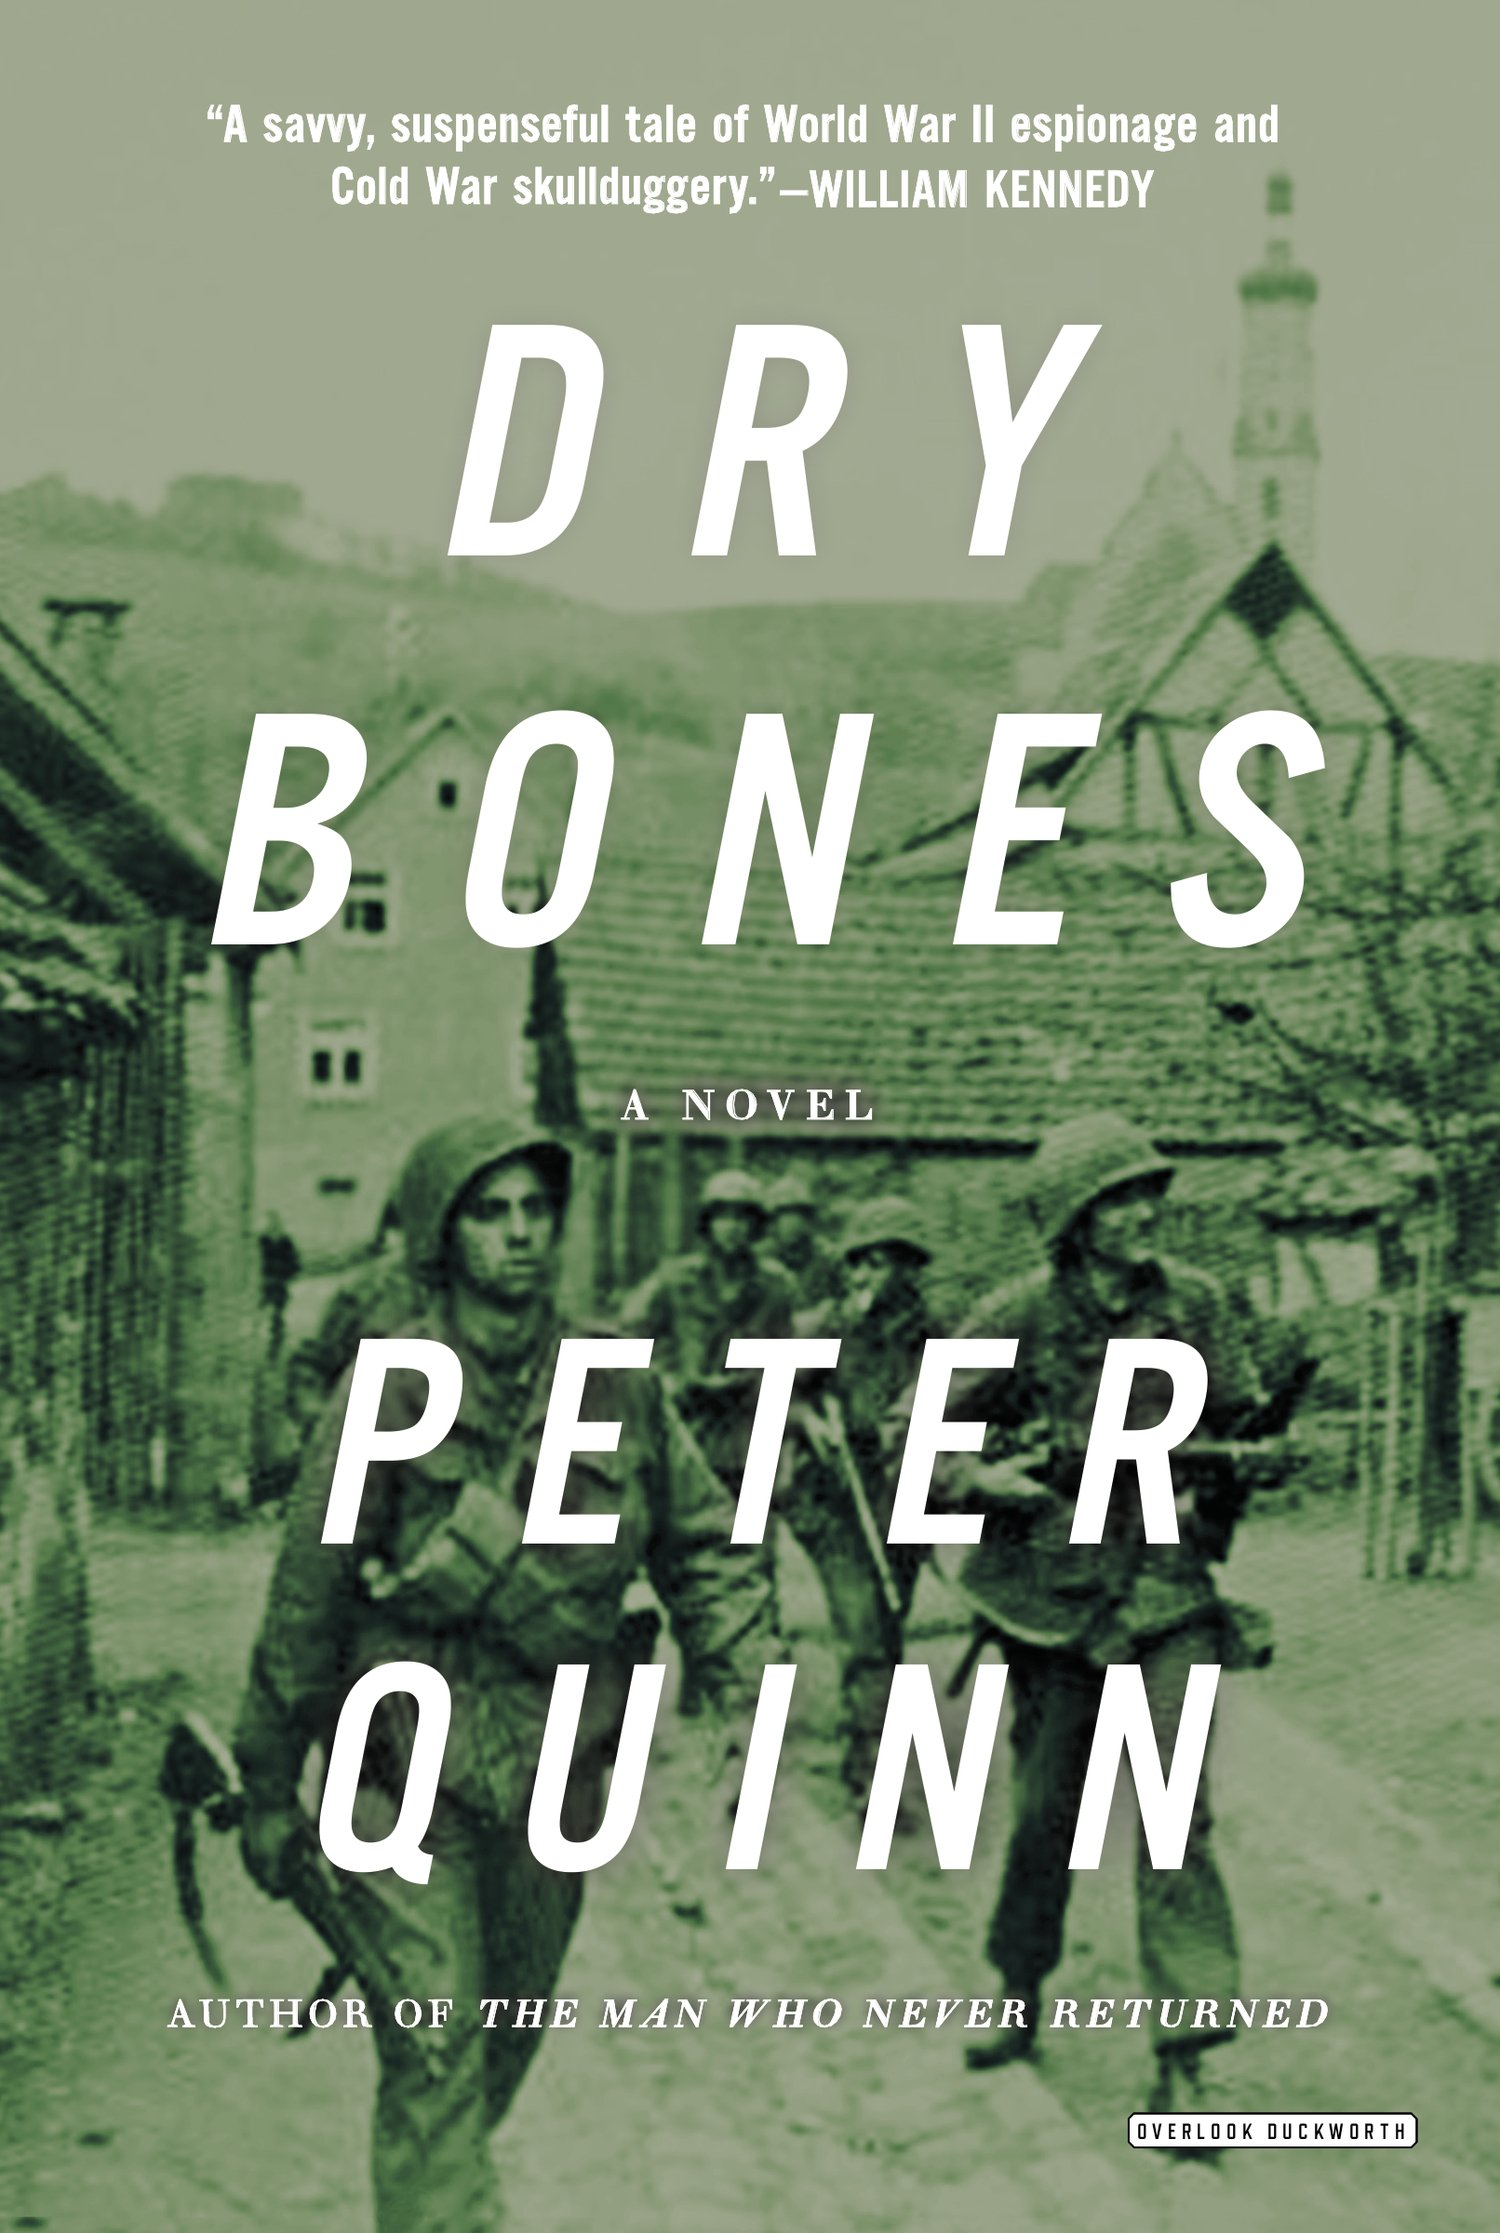 Dry Bones reviewed on New World Review - by M. J. MooreFrom: New World ReviewDate: December 8, 2013